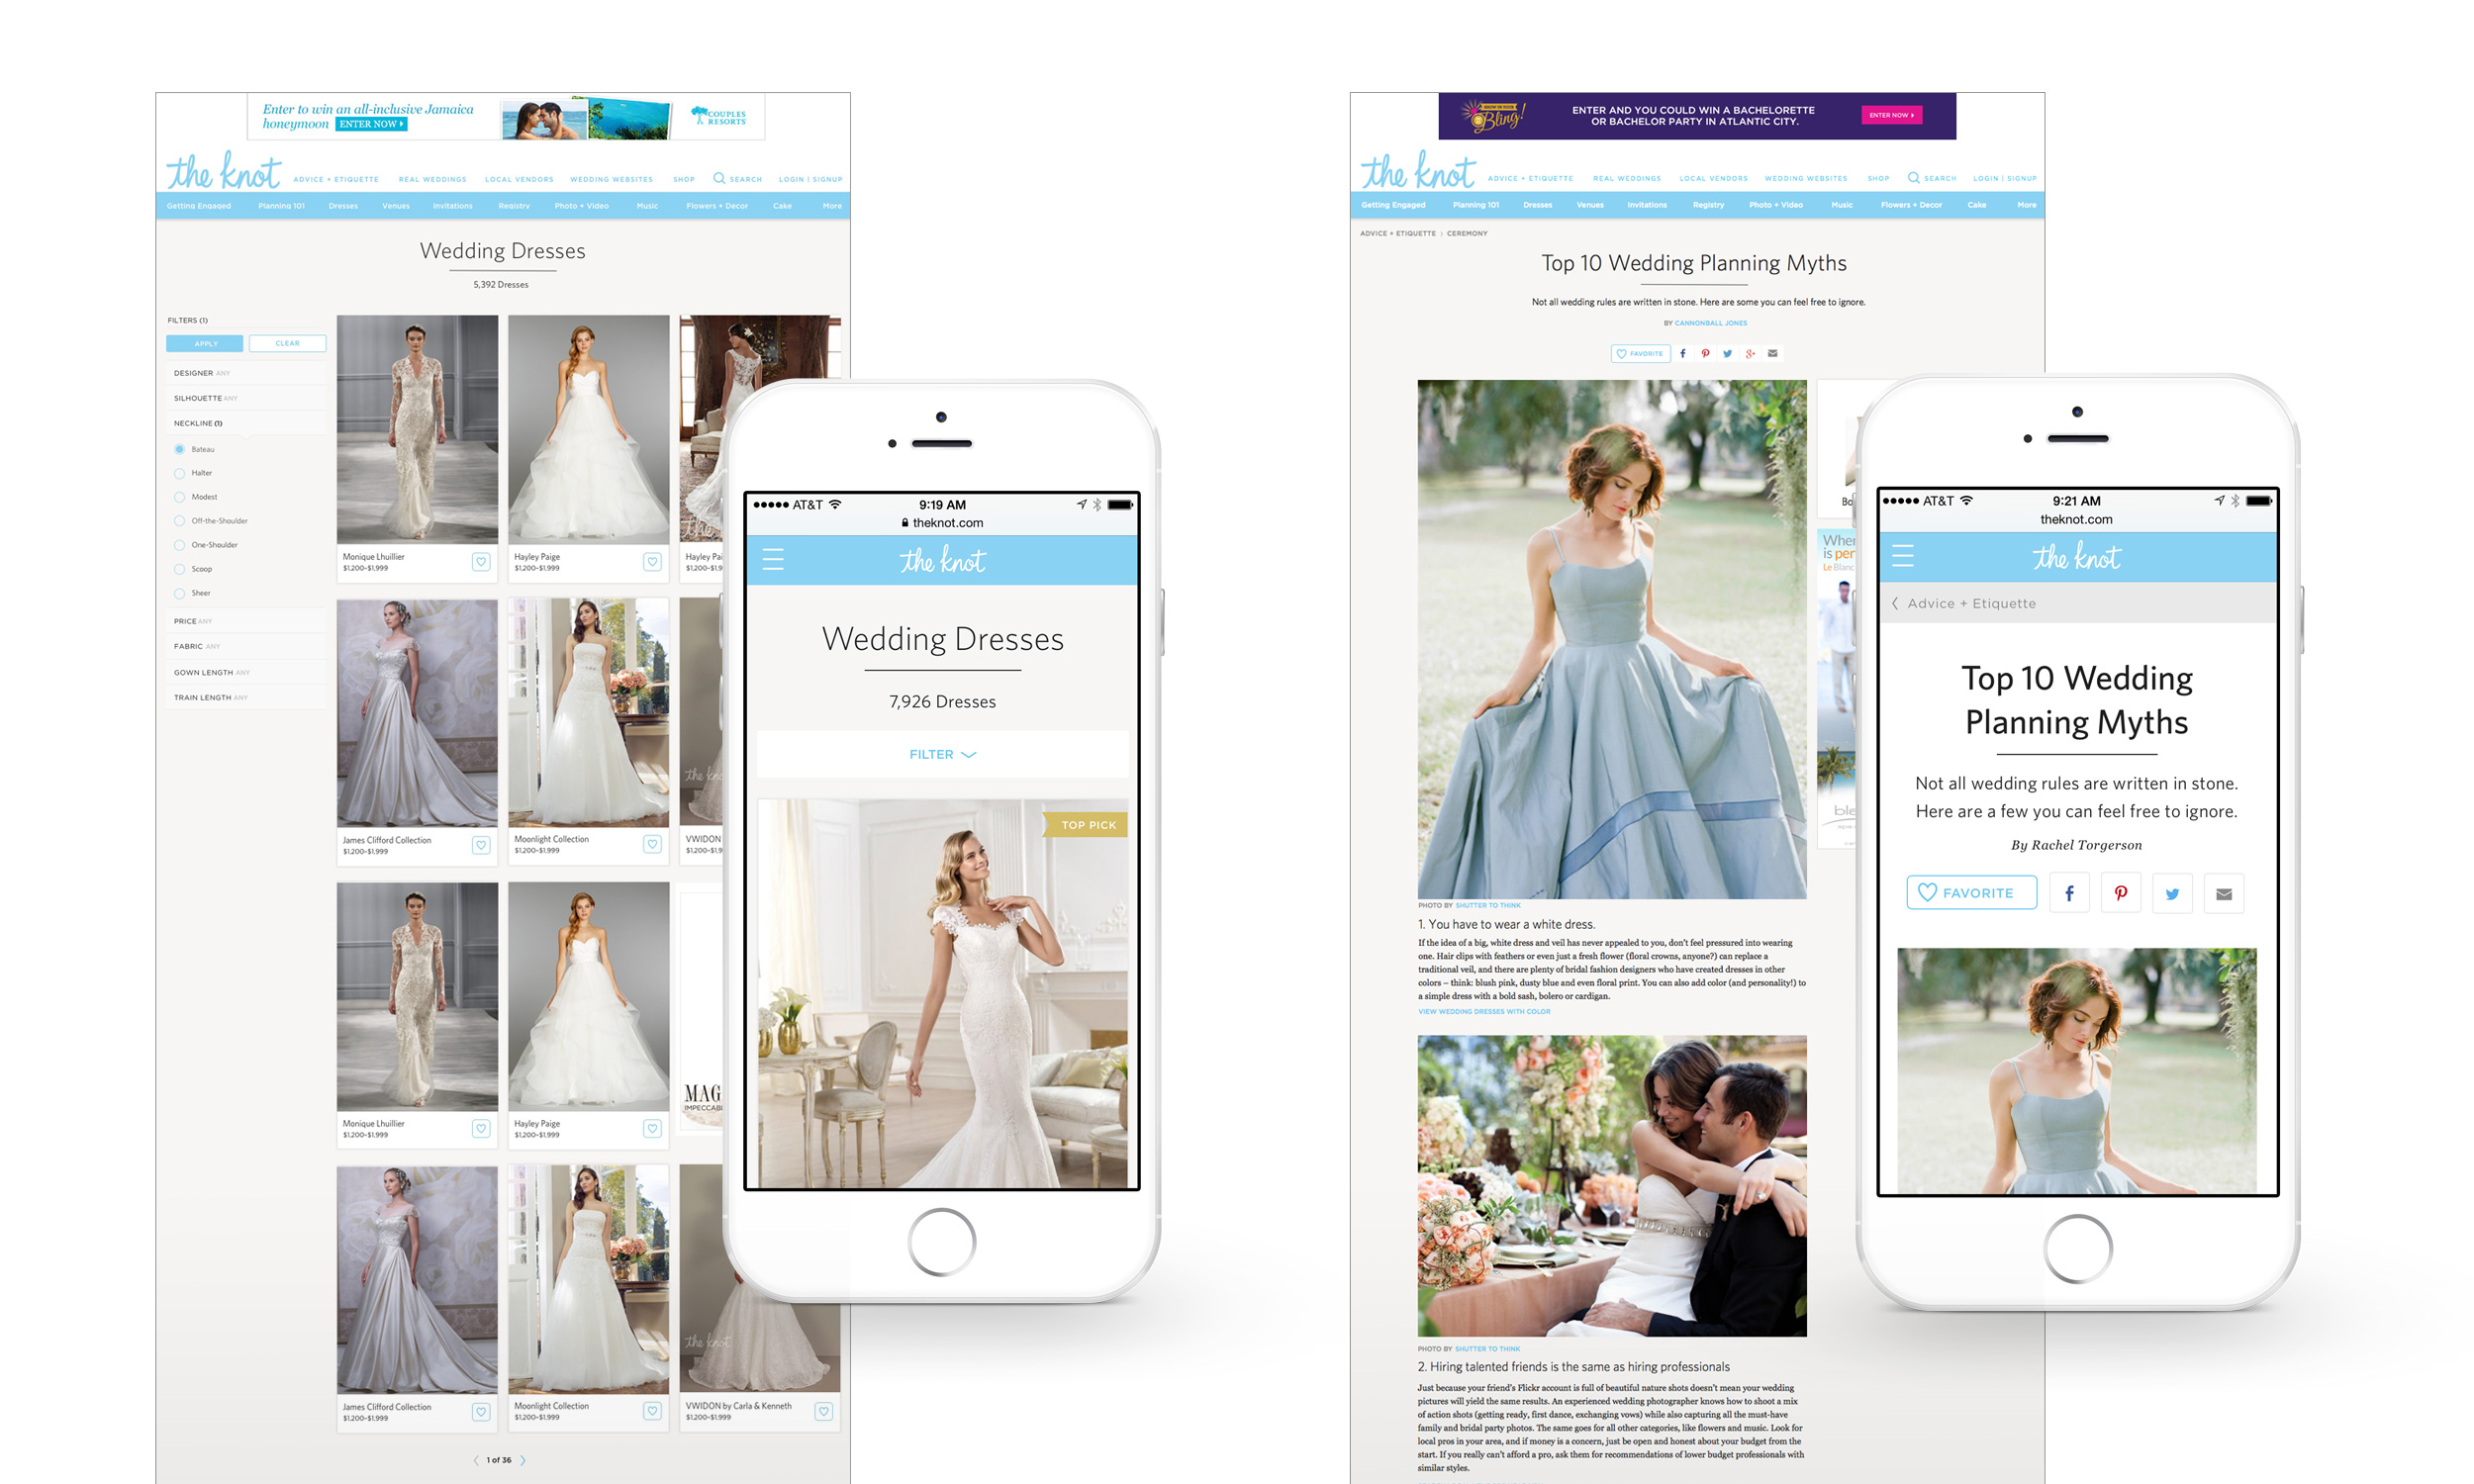 Responsive layouts for Fashion Results Page and Article, large and small viewports